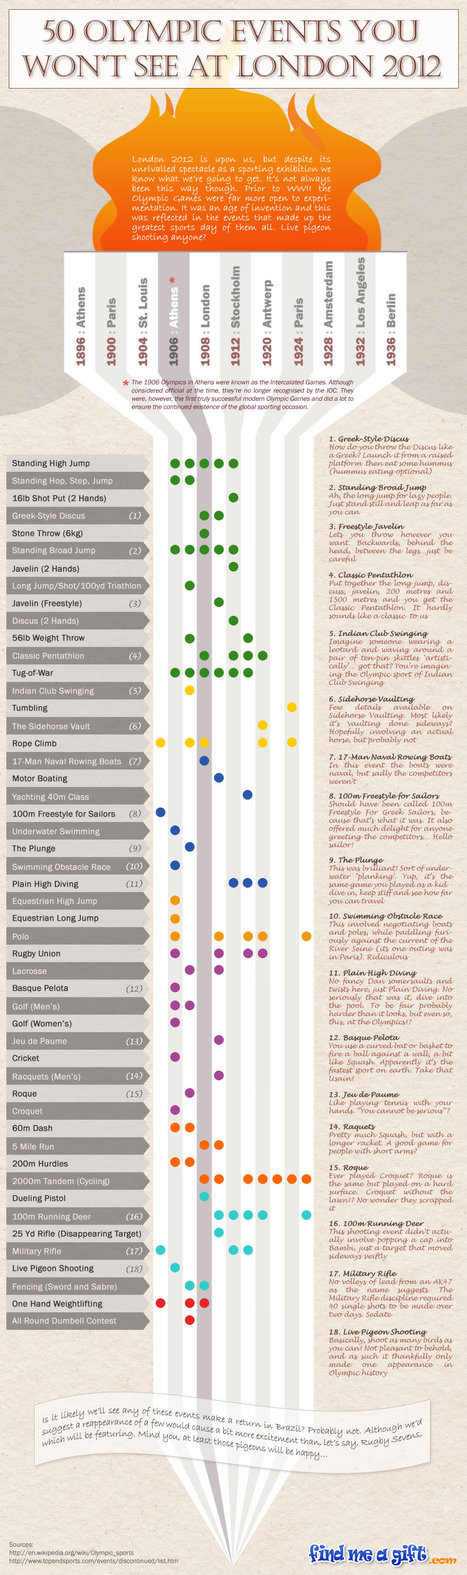 50 Events You Won't See At London Olympic 2012 [Infographic]   All Infographics   All Infographics   Scoop.it